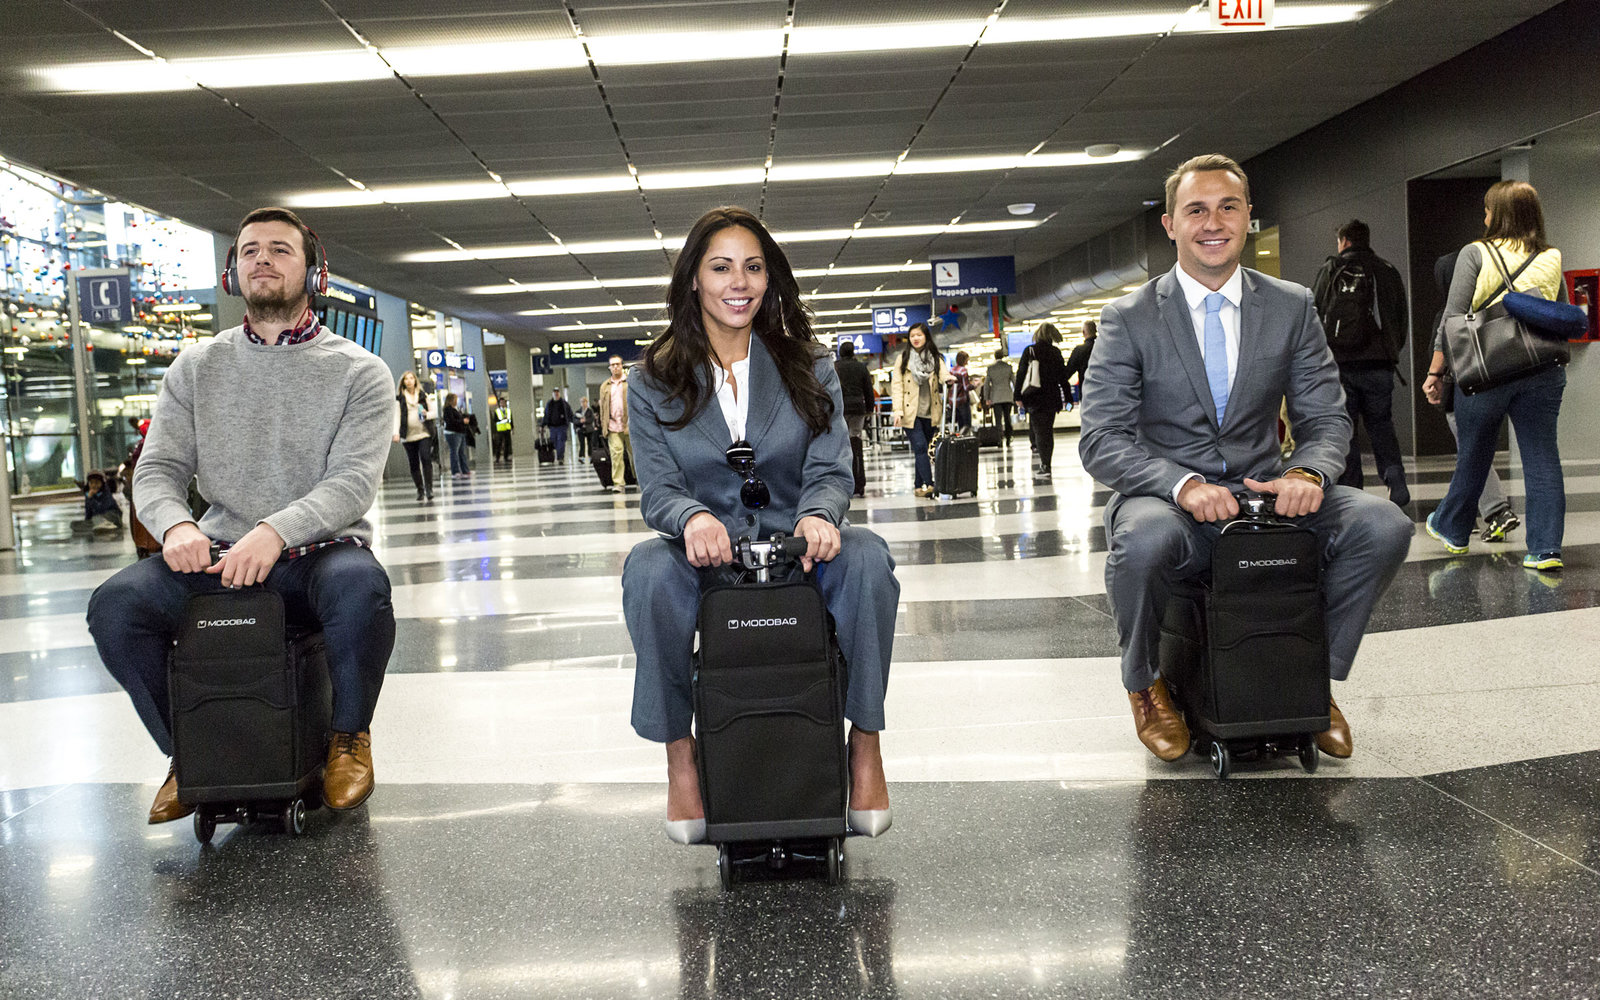 You can now ride your luggage around the airport